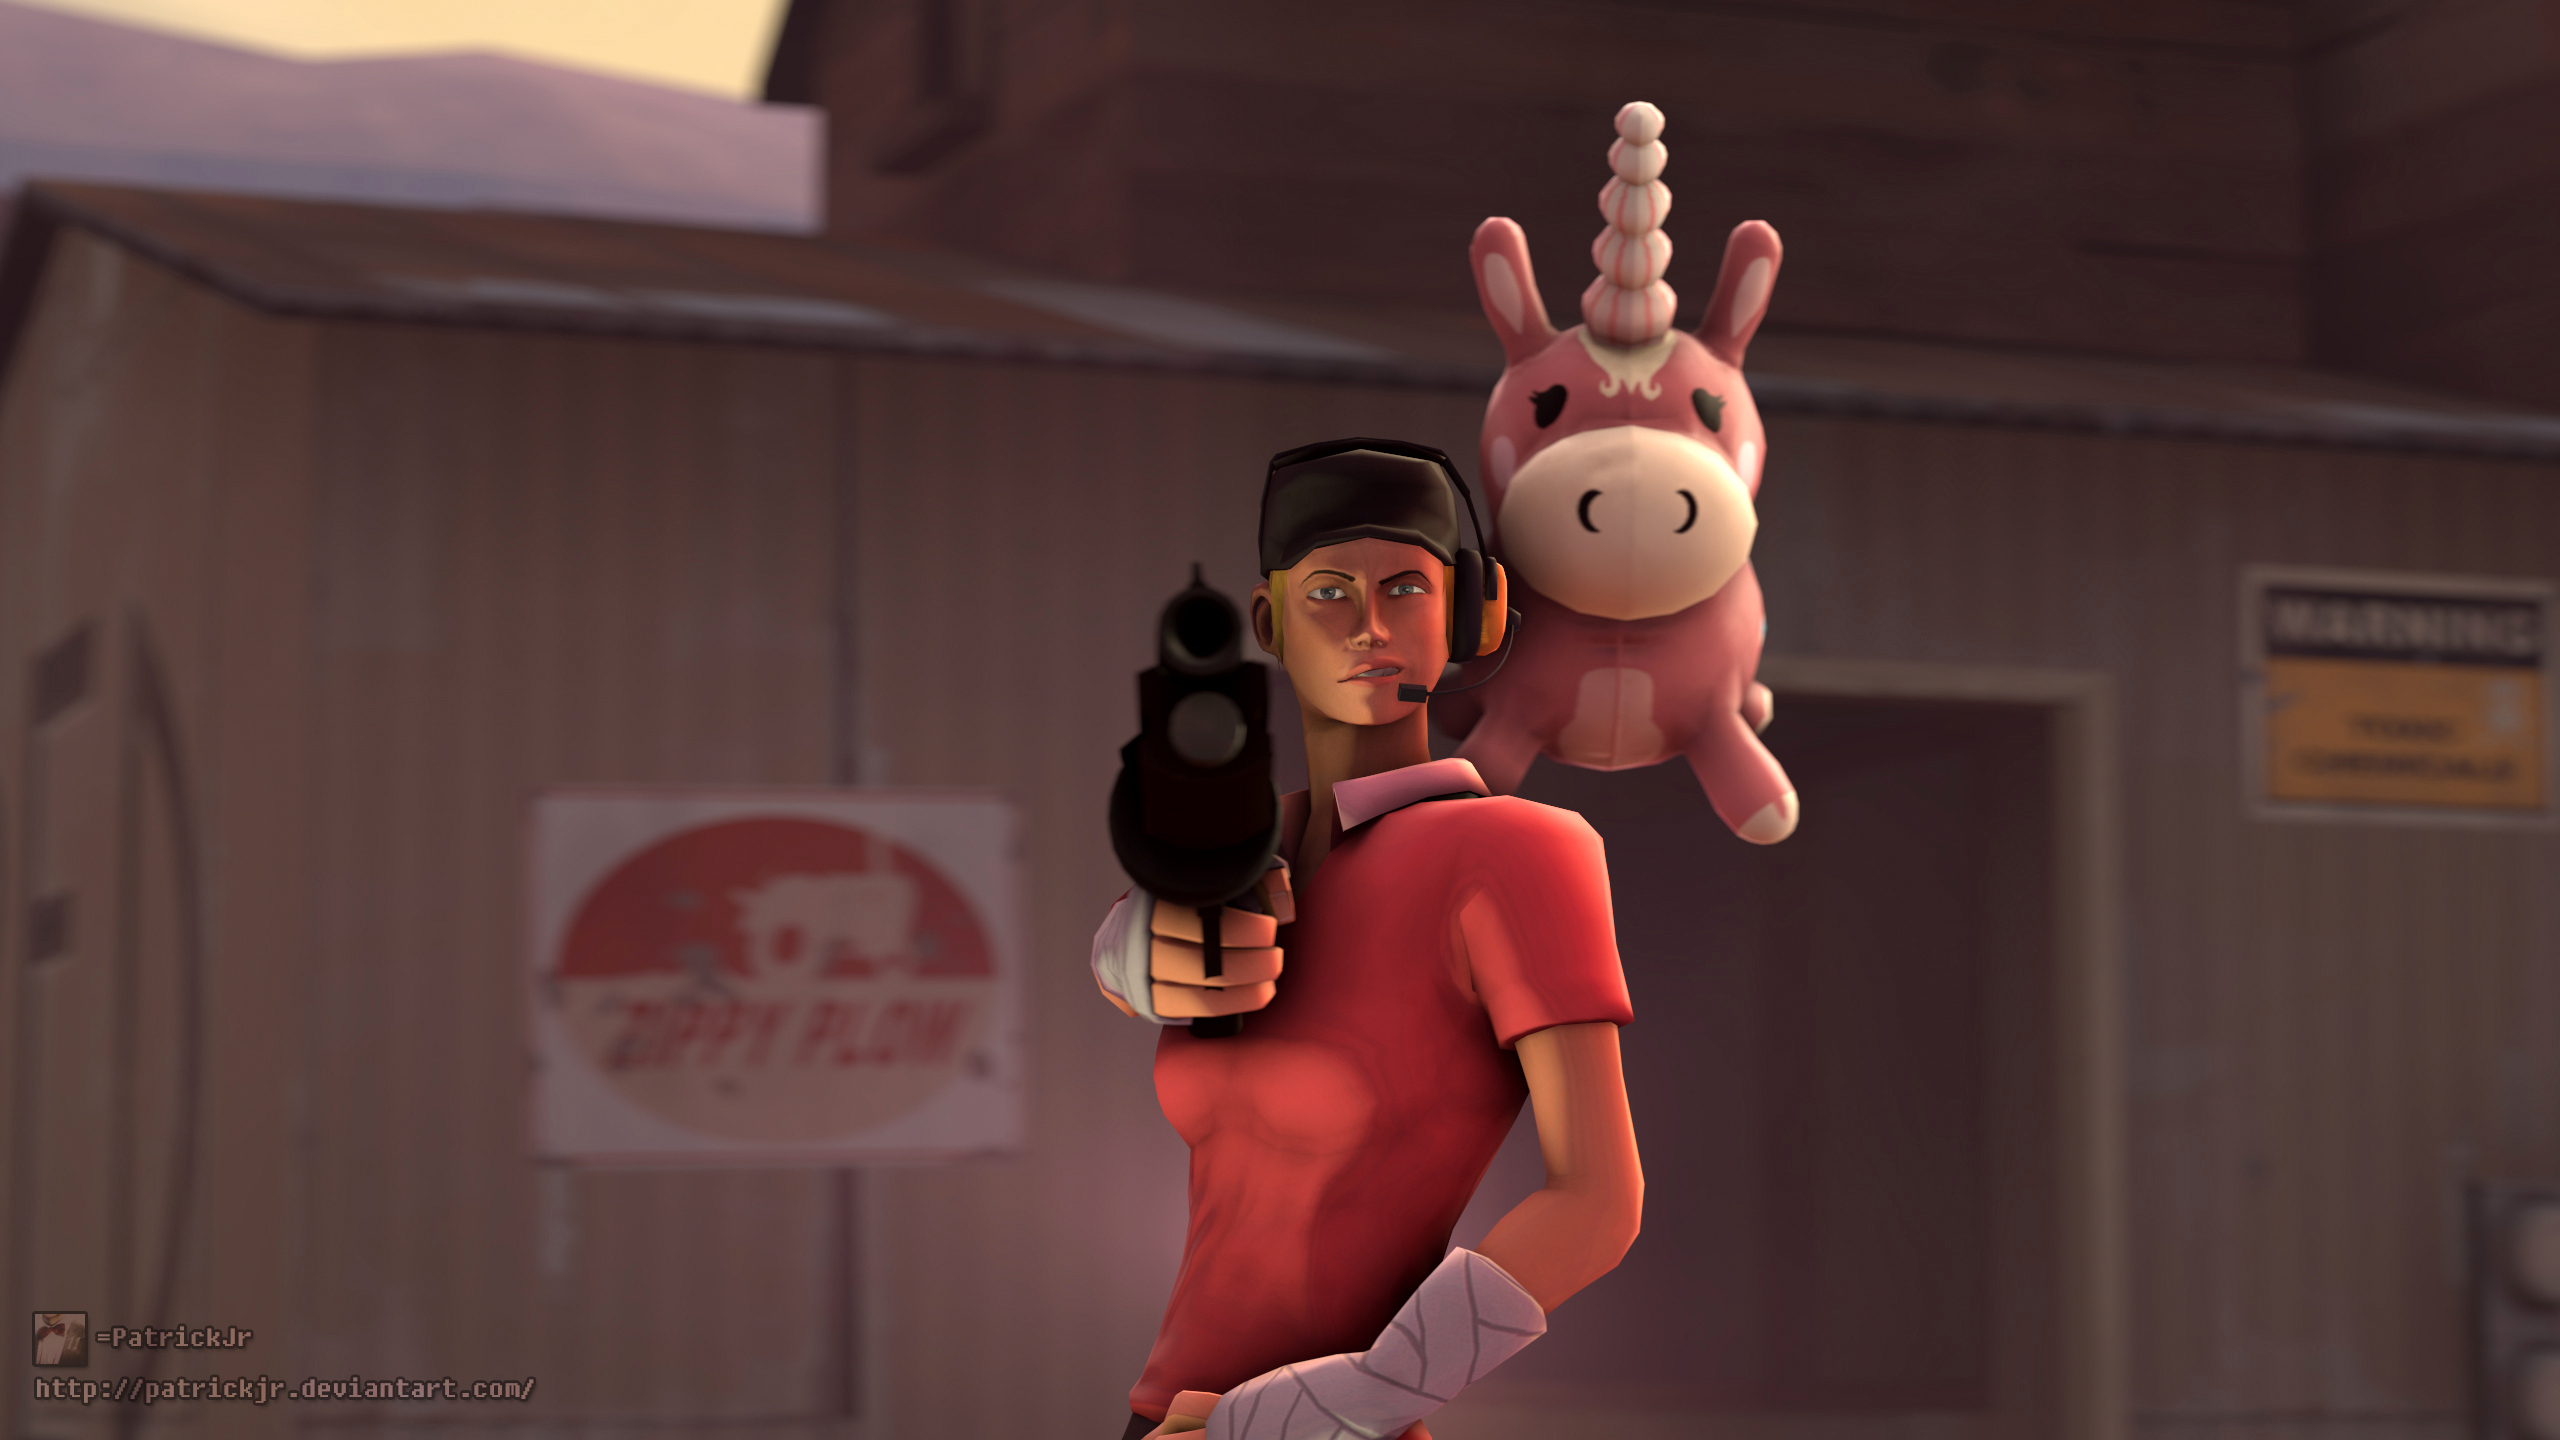 SFM Poster: Watch out Bud by PatrickJr